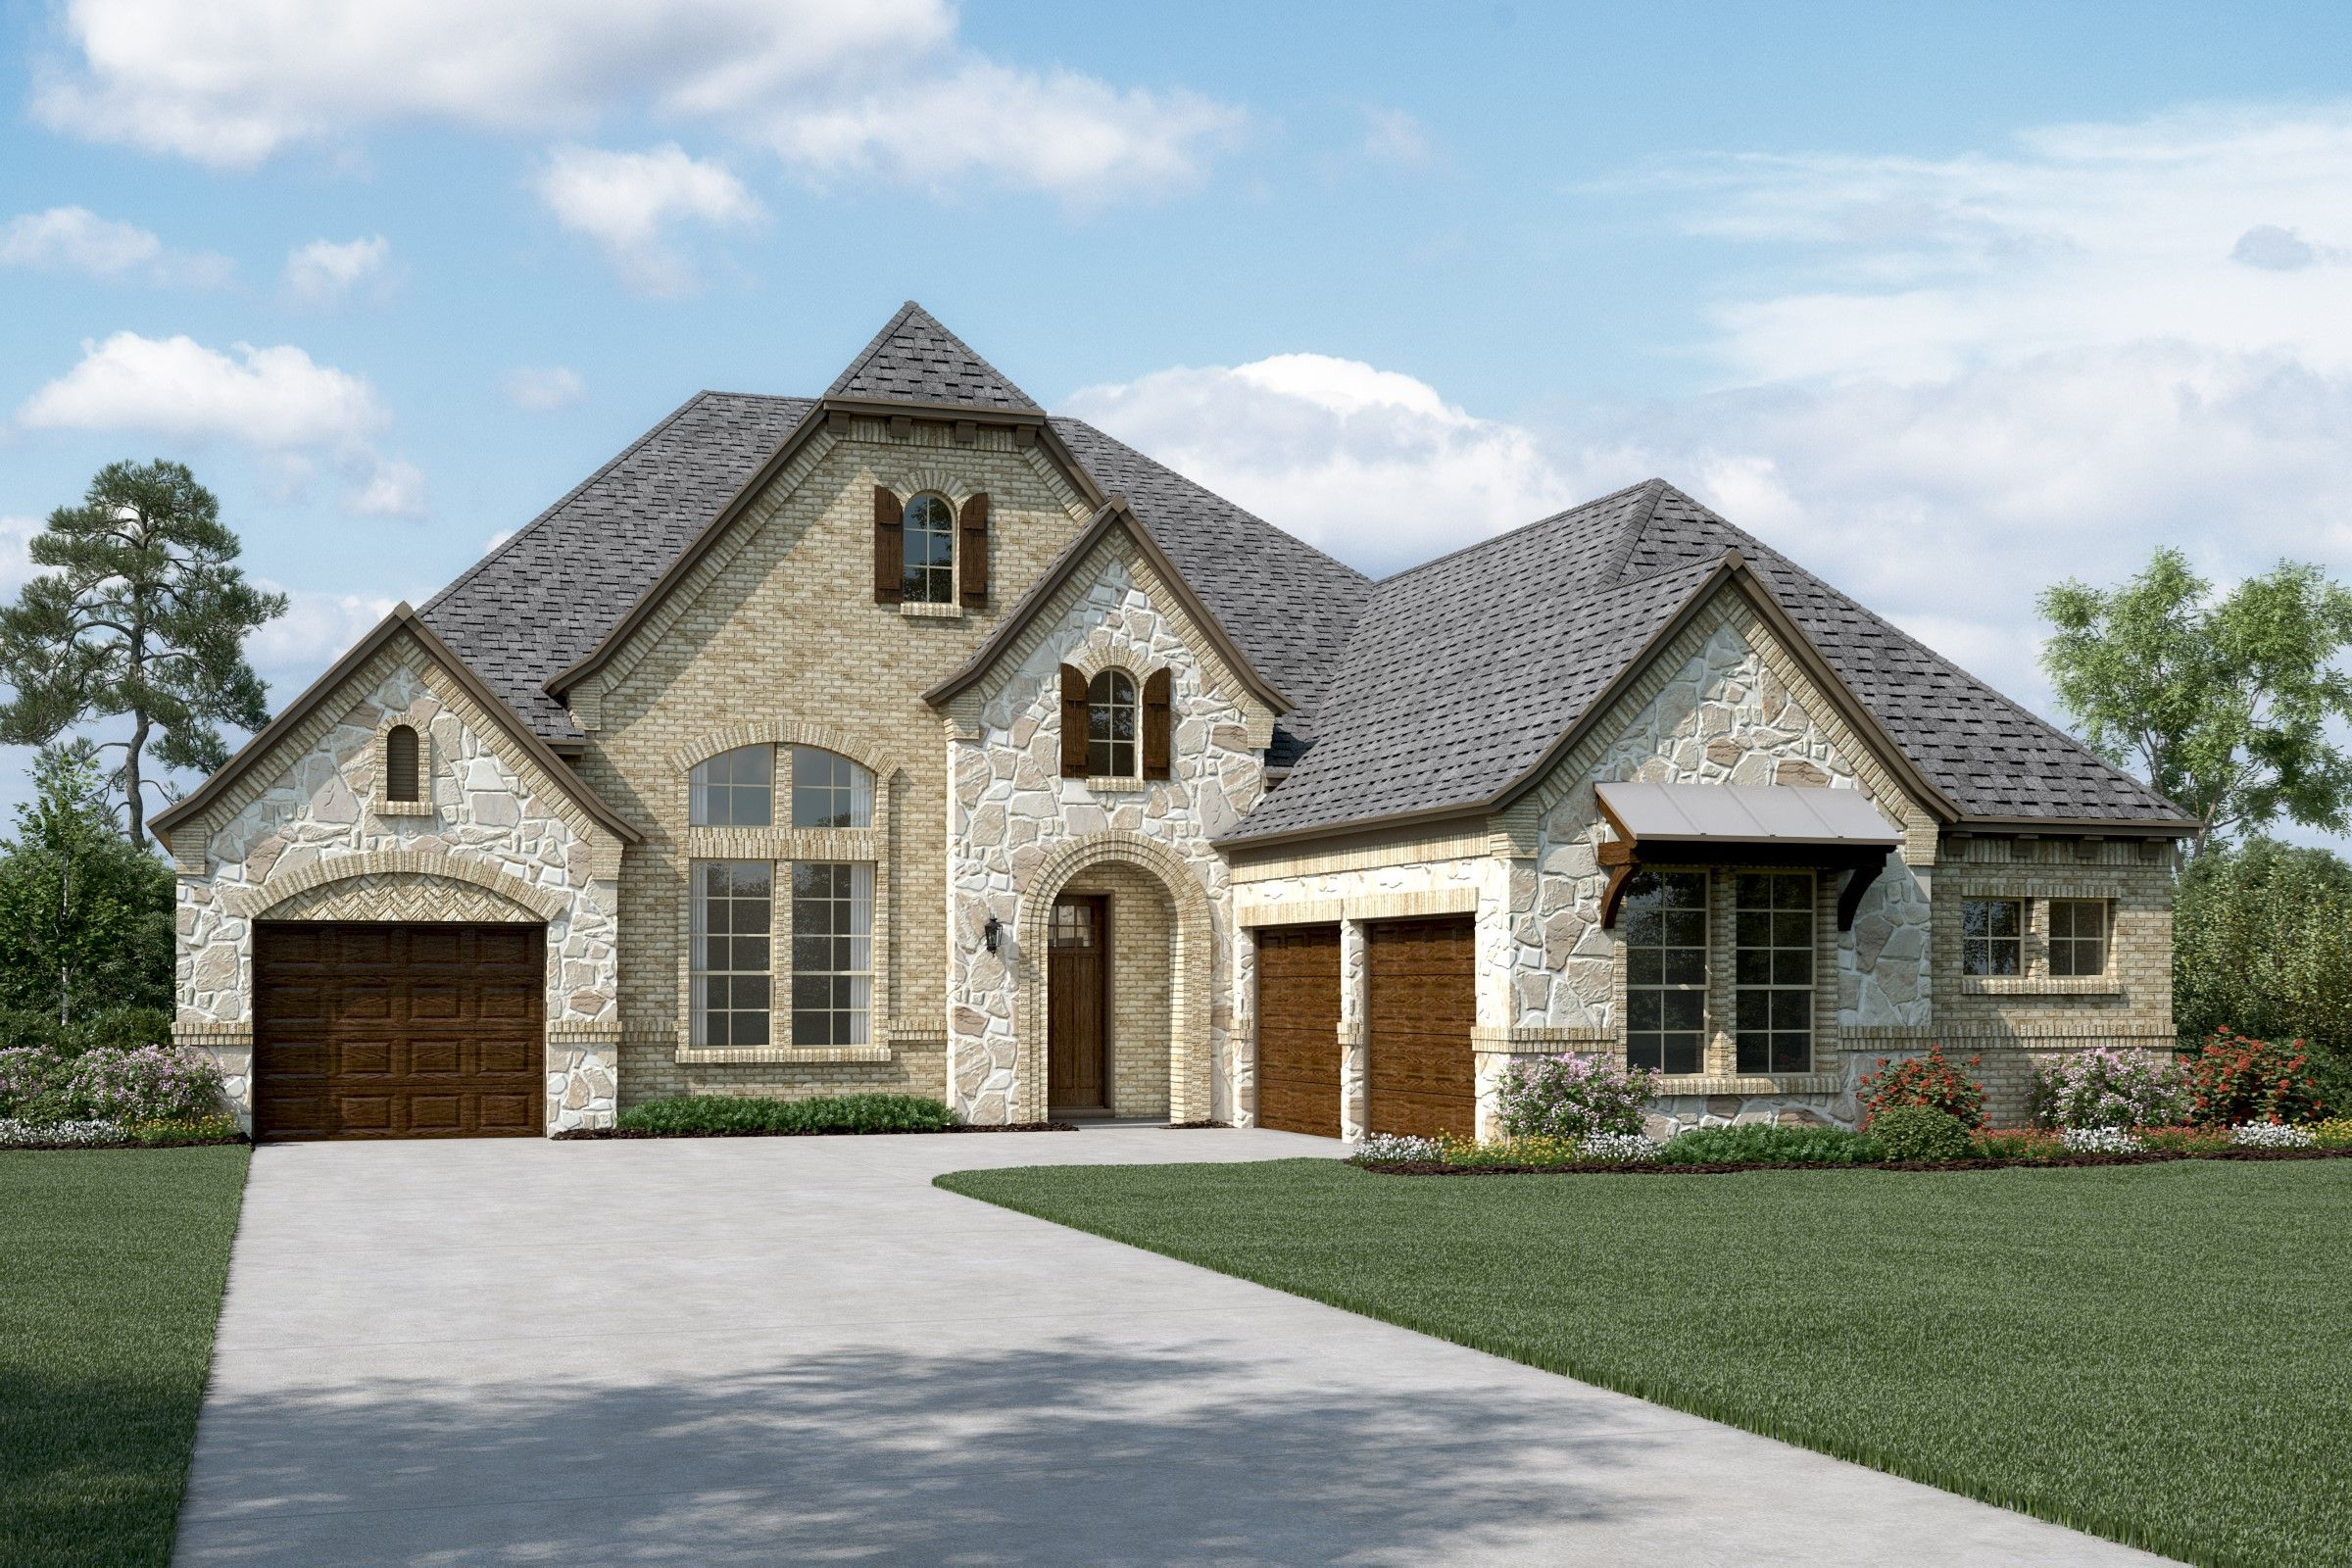 Single Family for Active at Primrose - Manor 736 Sterling Drive Murphy, Texas 75094 United States